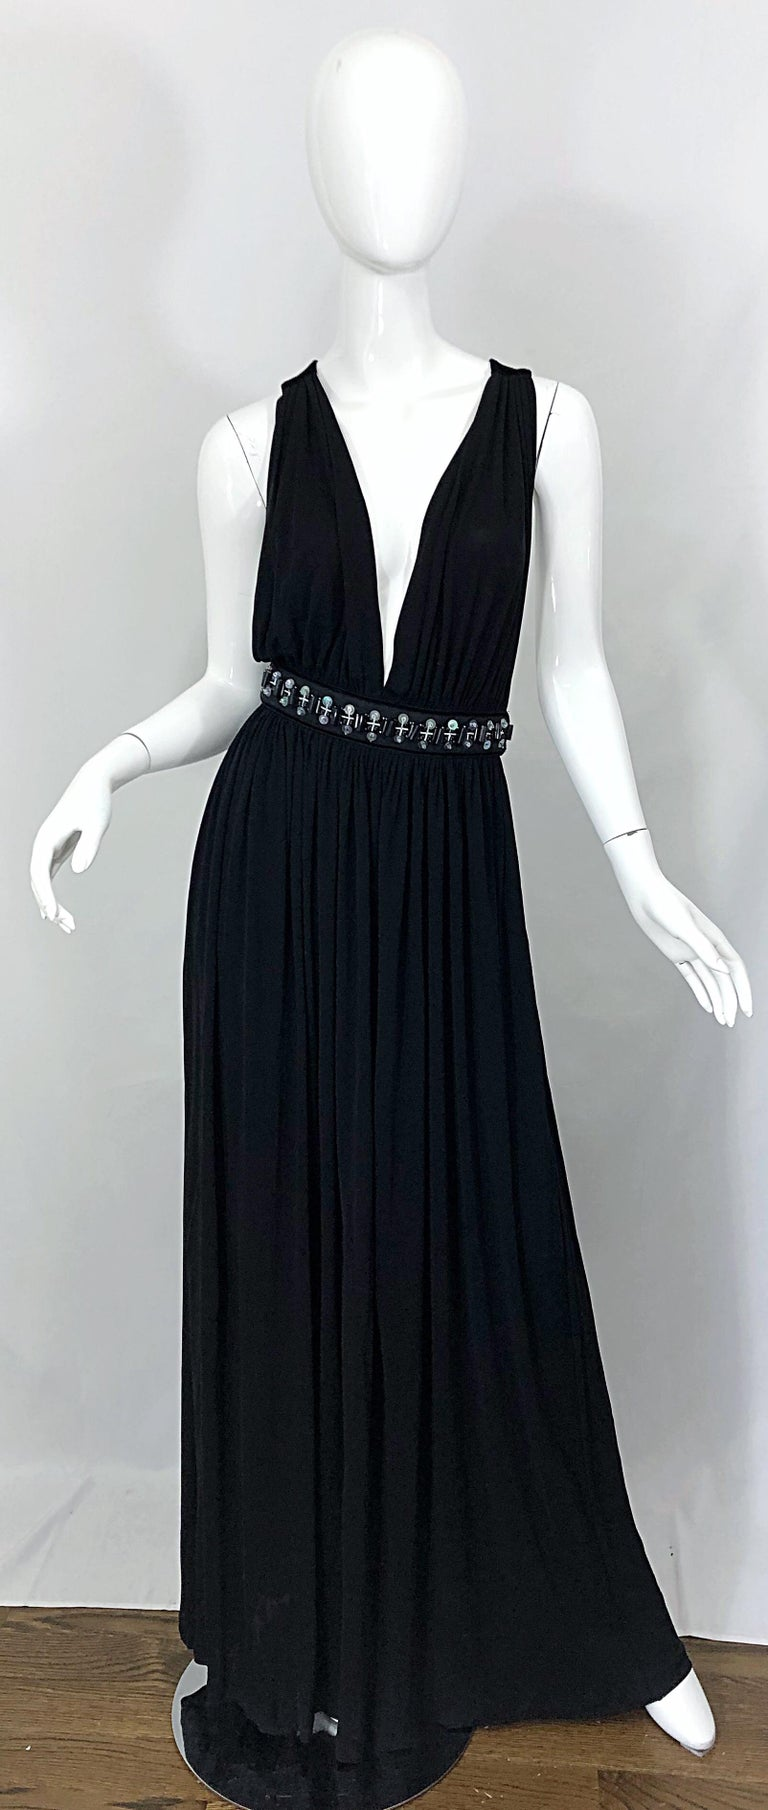 1990s Dolce & Gabbana D&G Black Plunging Sexy Beaded Sleeveless Vintage 90s Gown For Sale 10